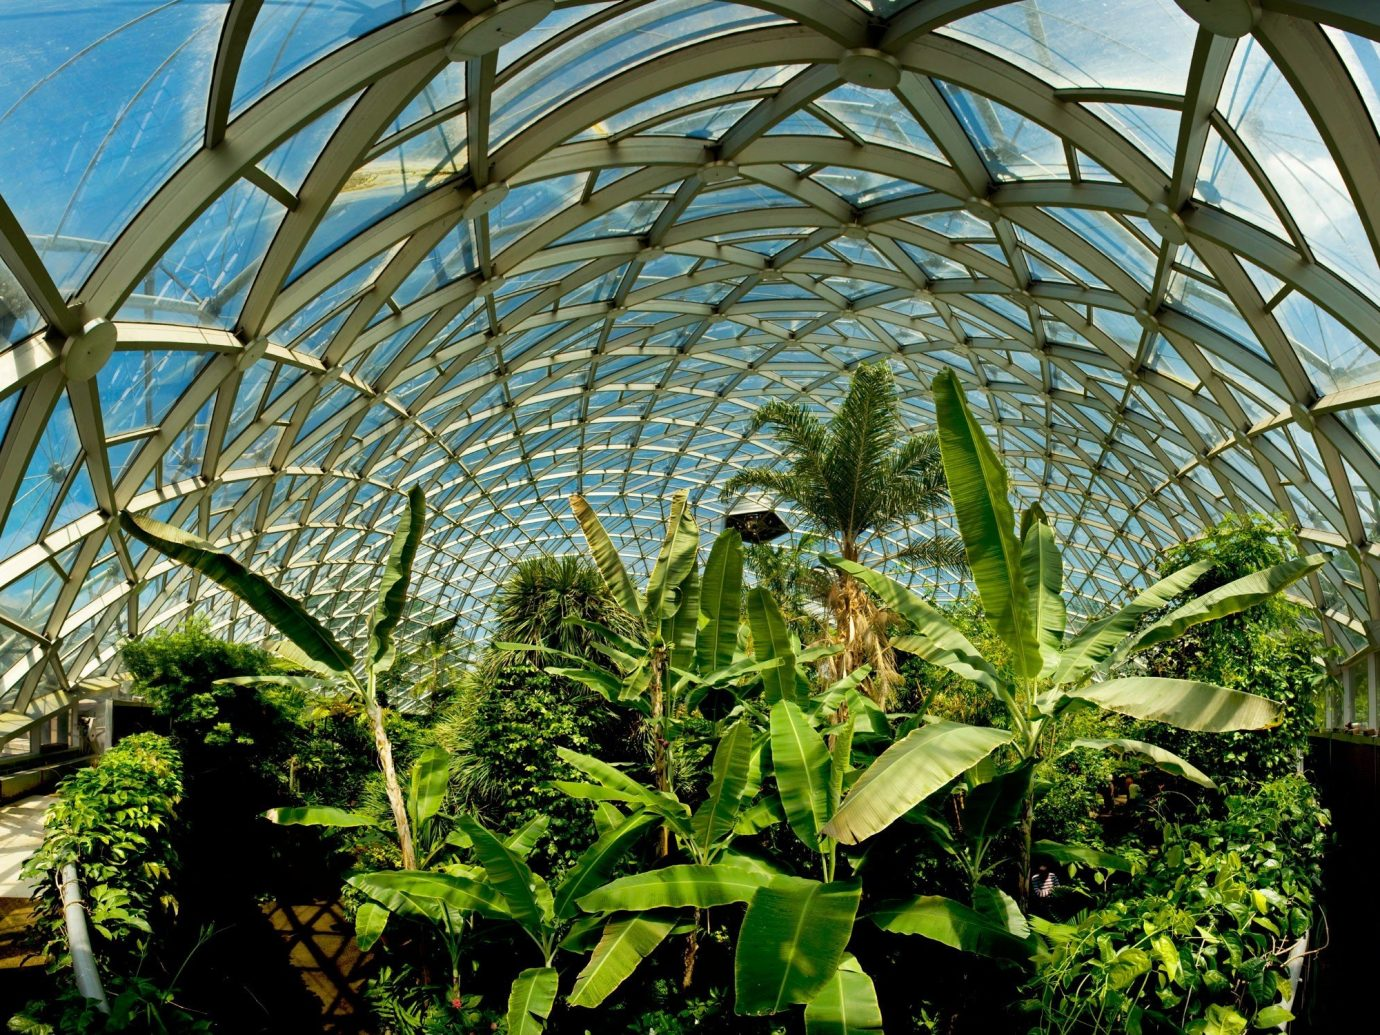 Offbeat plant Garden greenhouse botany flower arecales outdoor structure tropics Jungle botanical garden